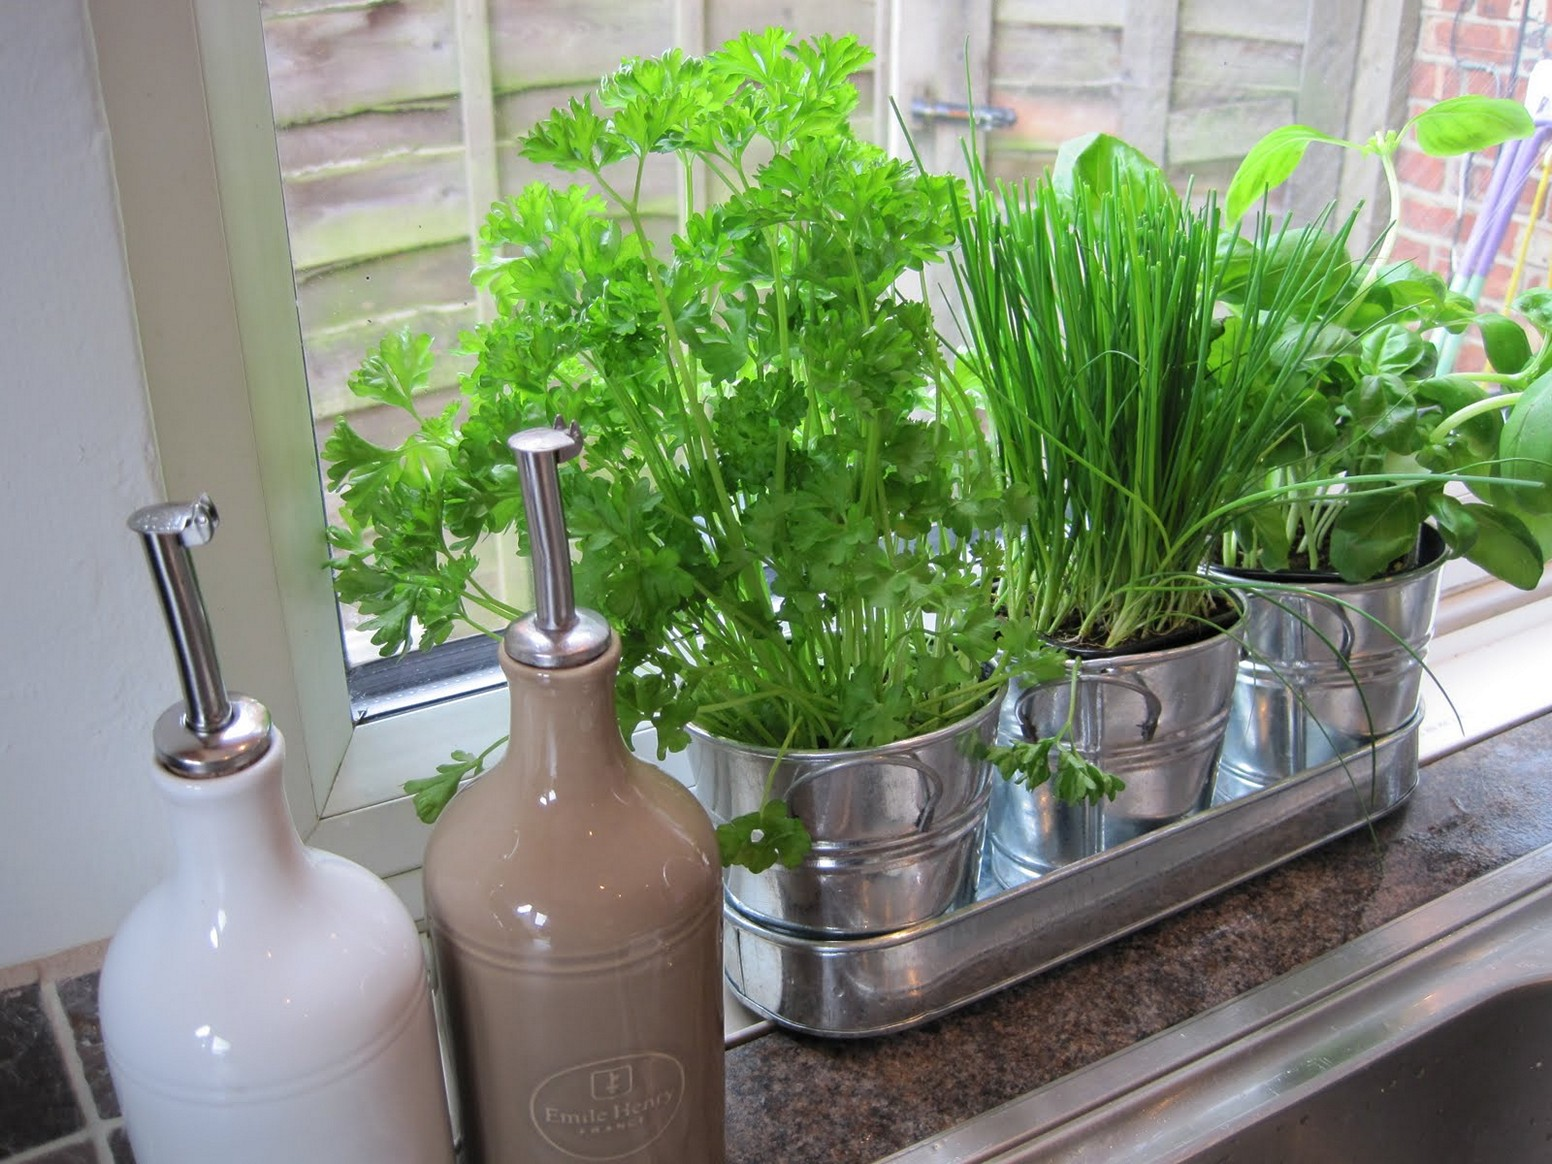 three metal pots, containing green herbs, parsley and chives and basil, in a metal tray, placed on a windowsill